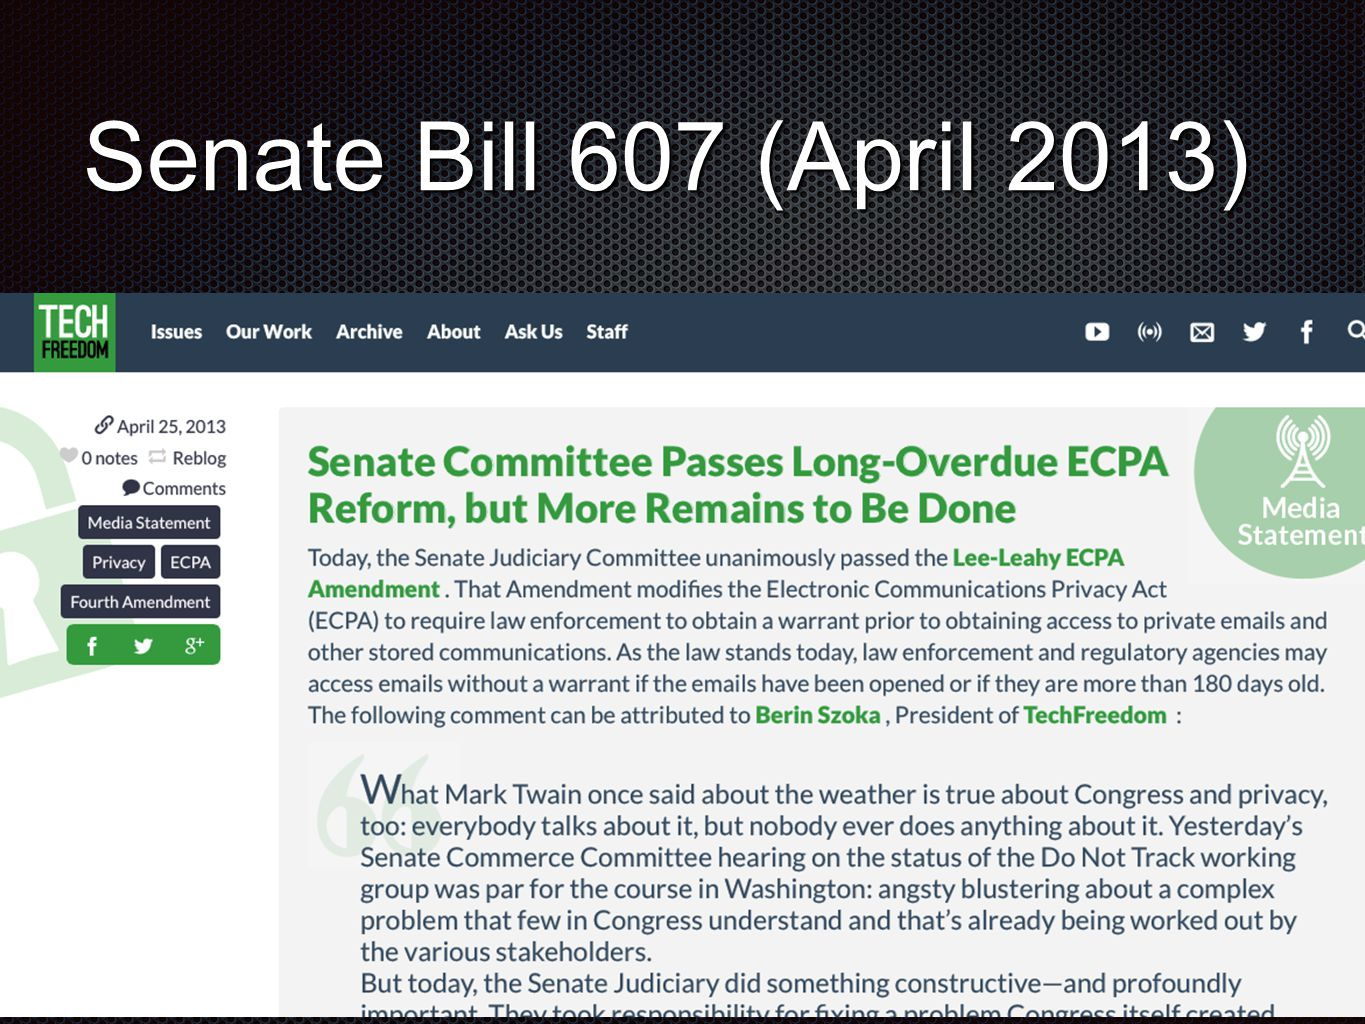 Senate Bill 607 (April 2013)